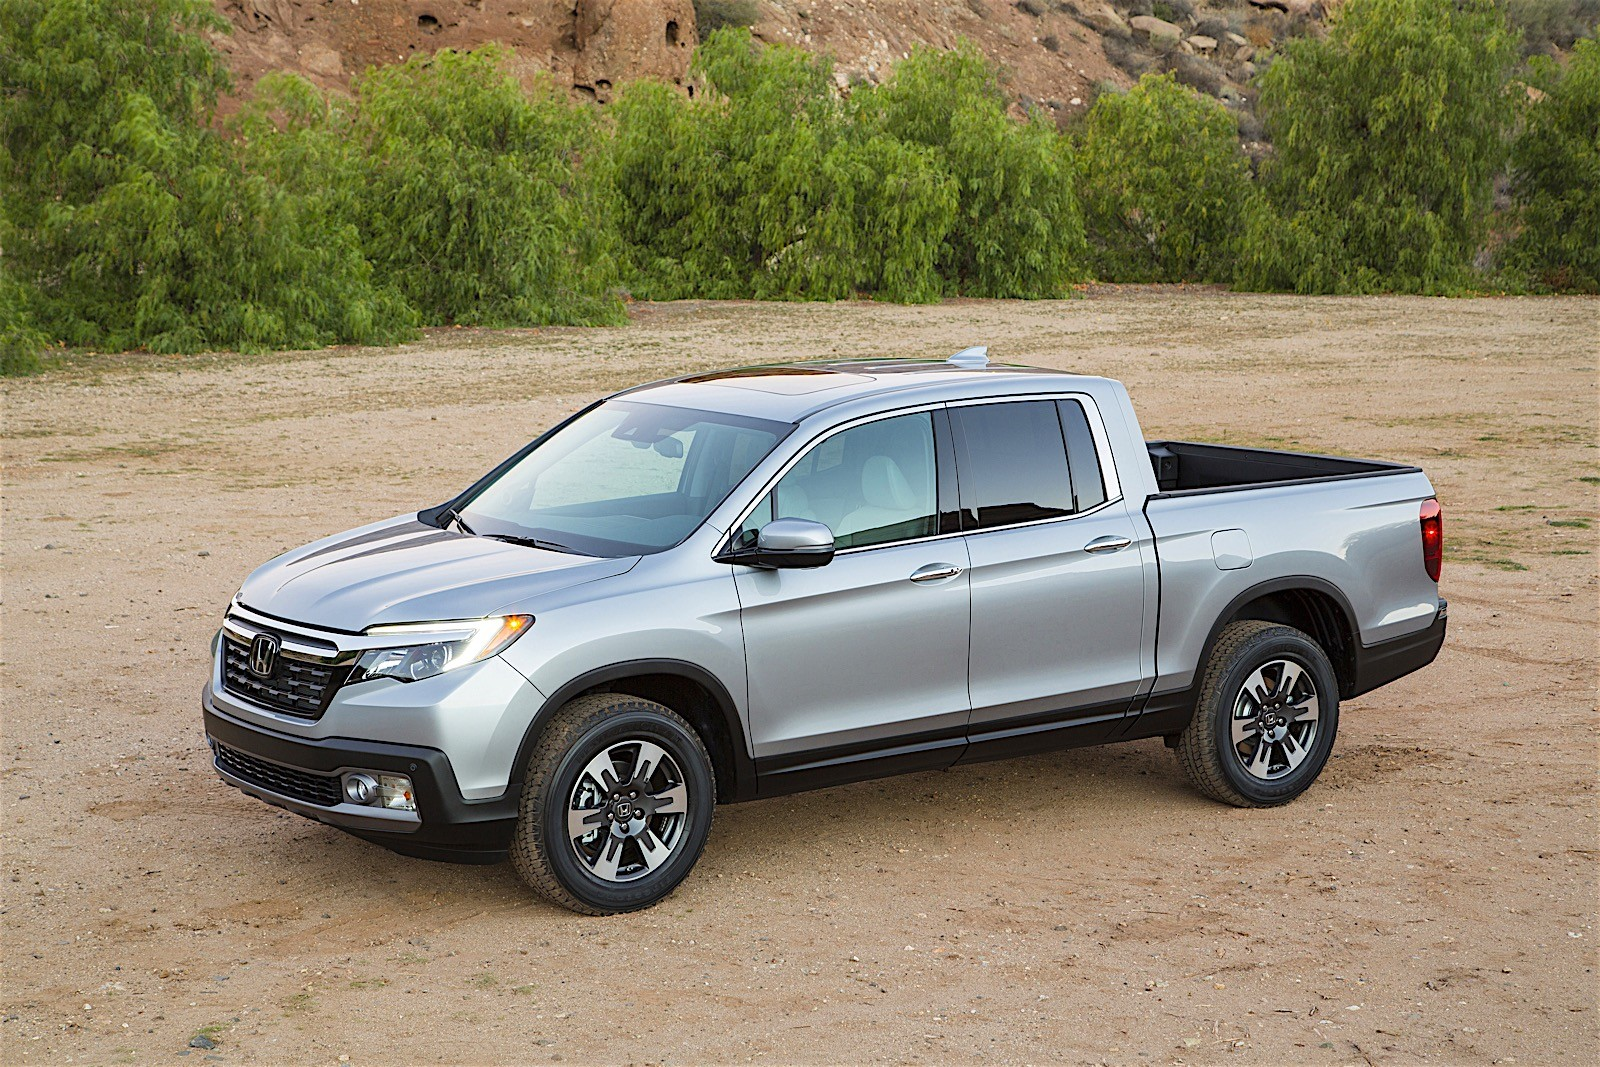 2017 honda ridgeline debuts with industry first in bed audio system autoevolution. Black Bedroom Furniture Sets. Home Design Ideas